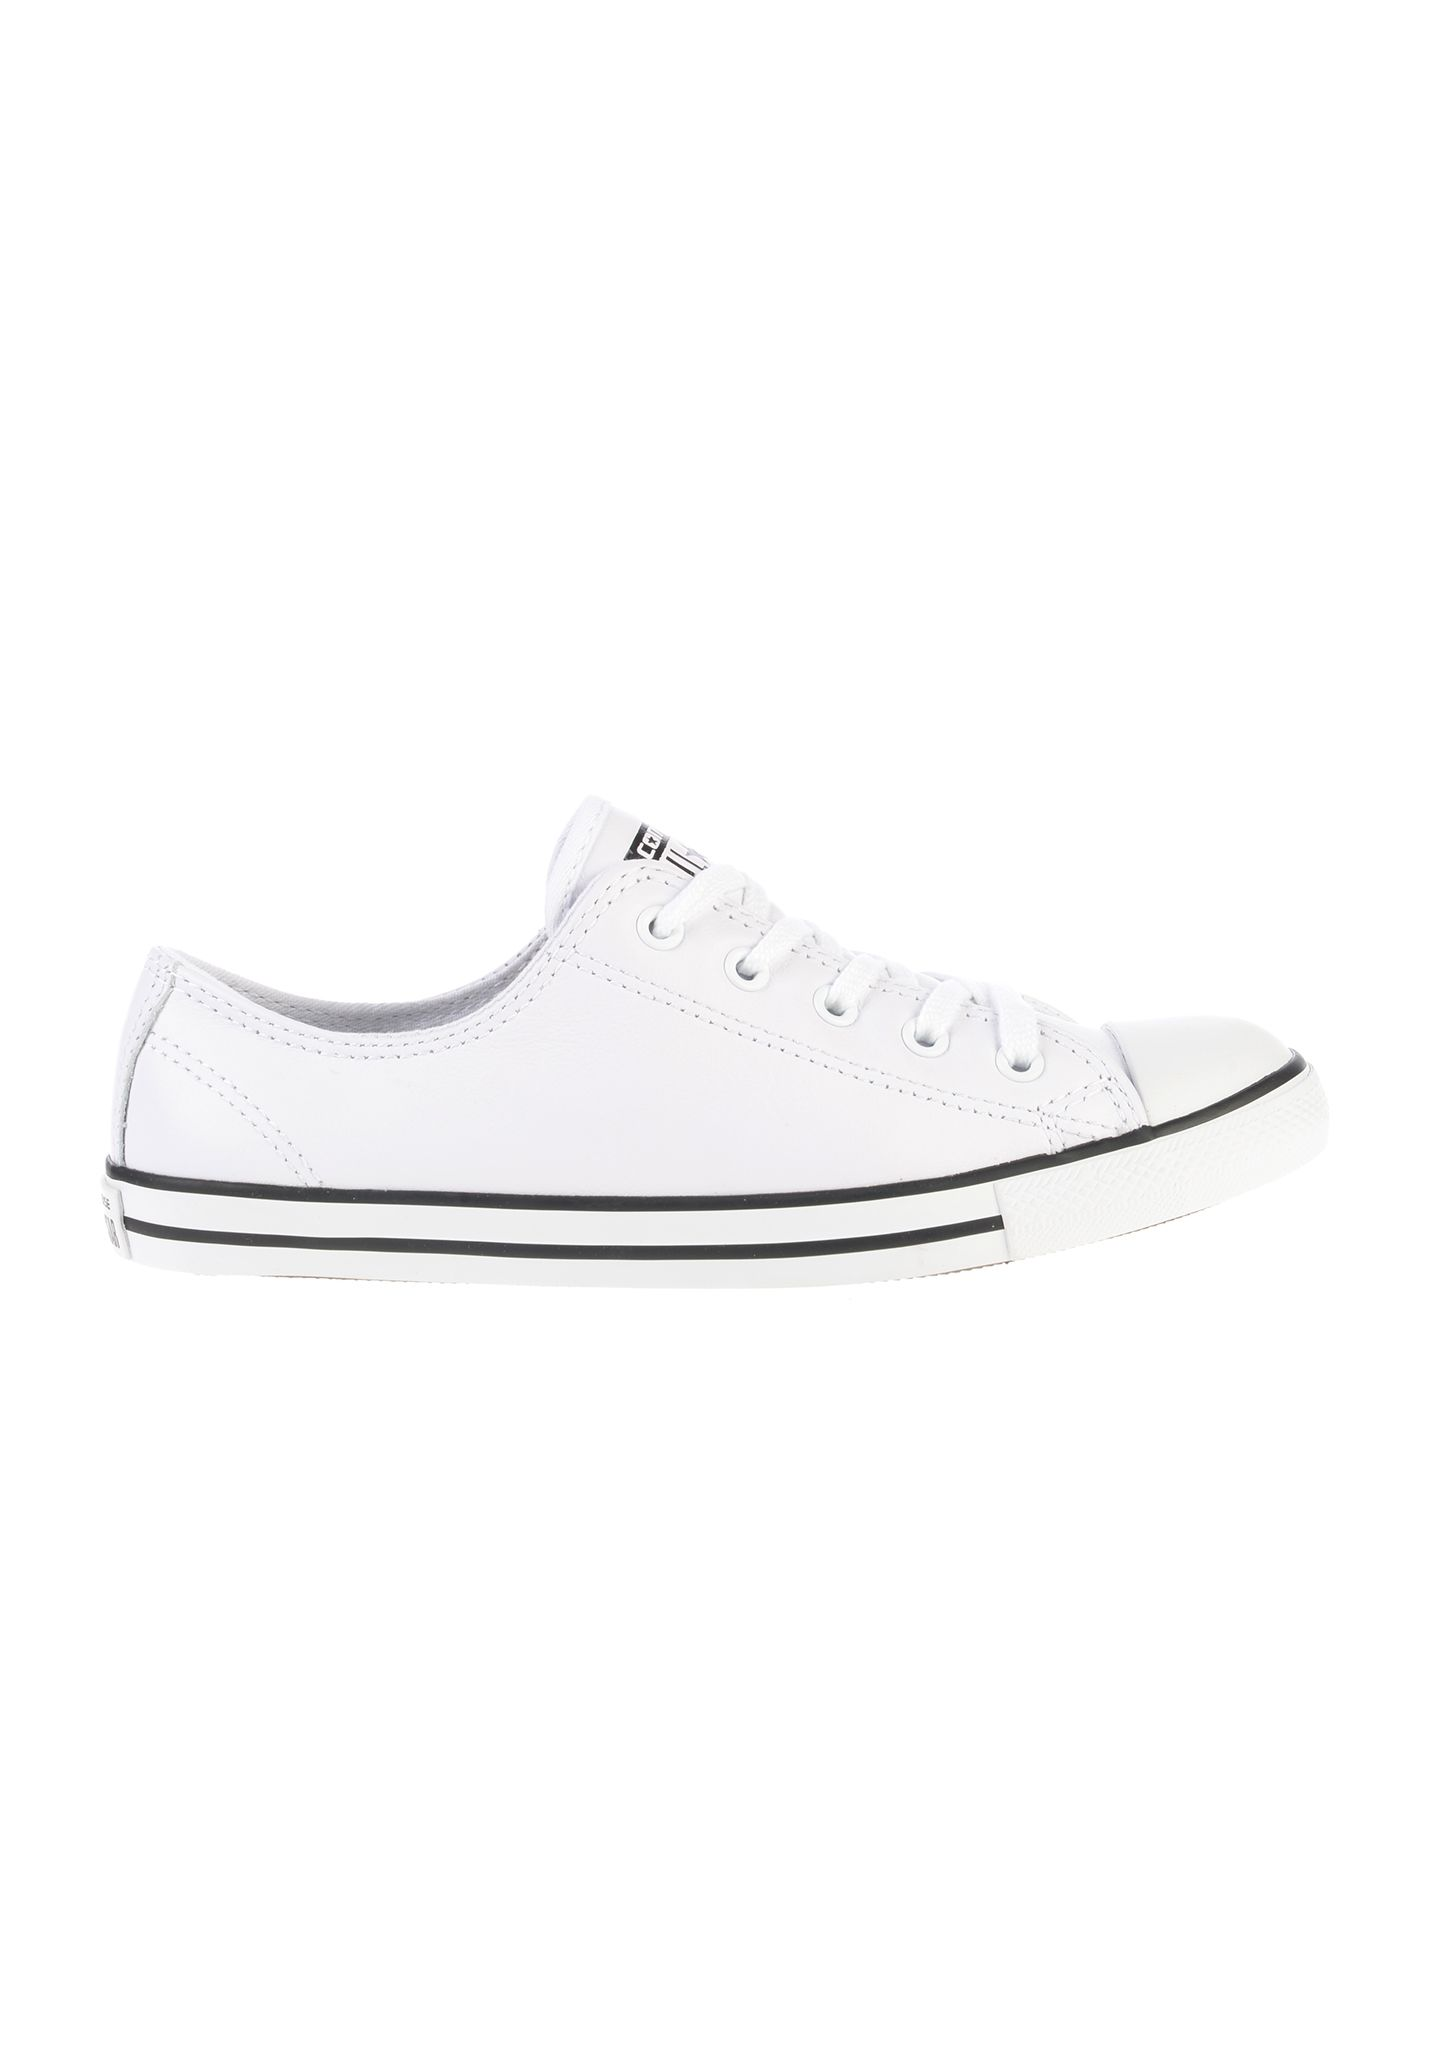 026e1c8dab6c Converse Chuck Taylor All Star Dainty Ox - Sneakers for Women - White -  Planet Sports